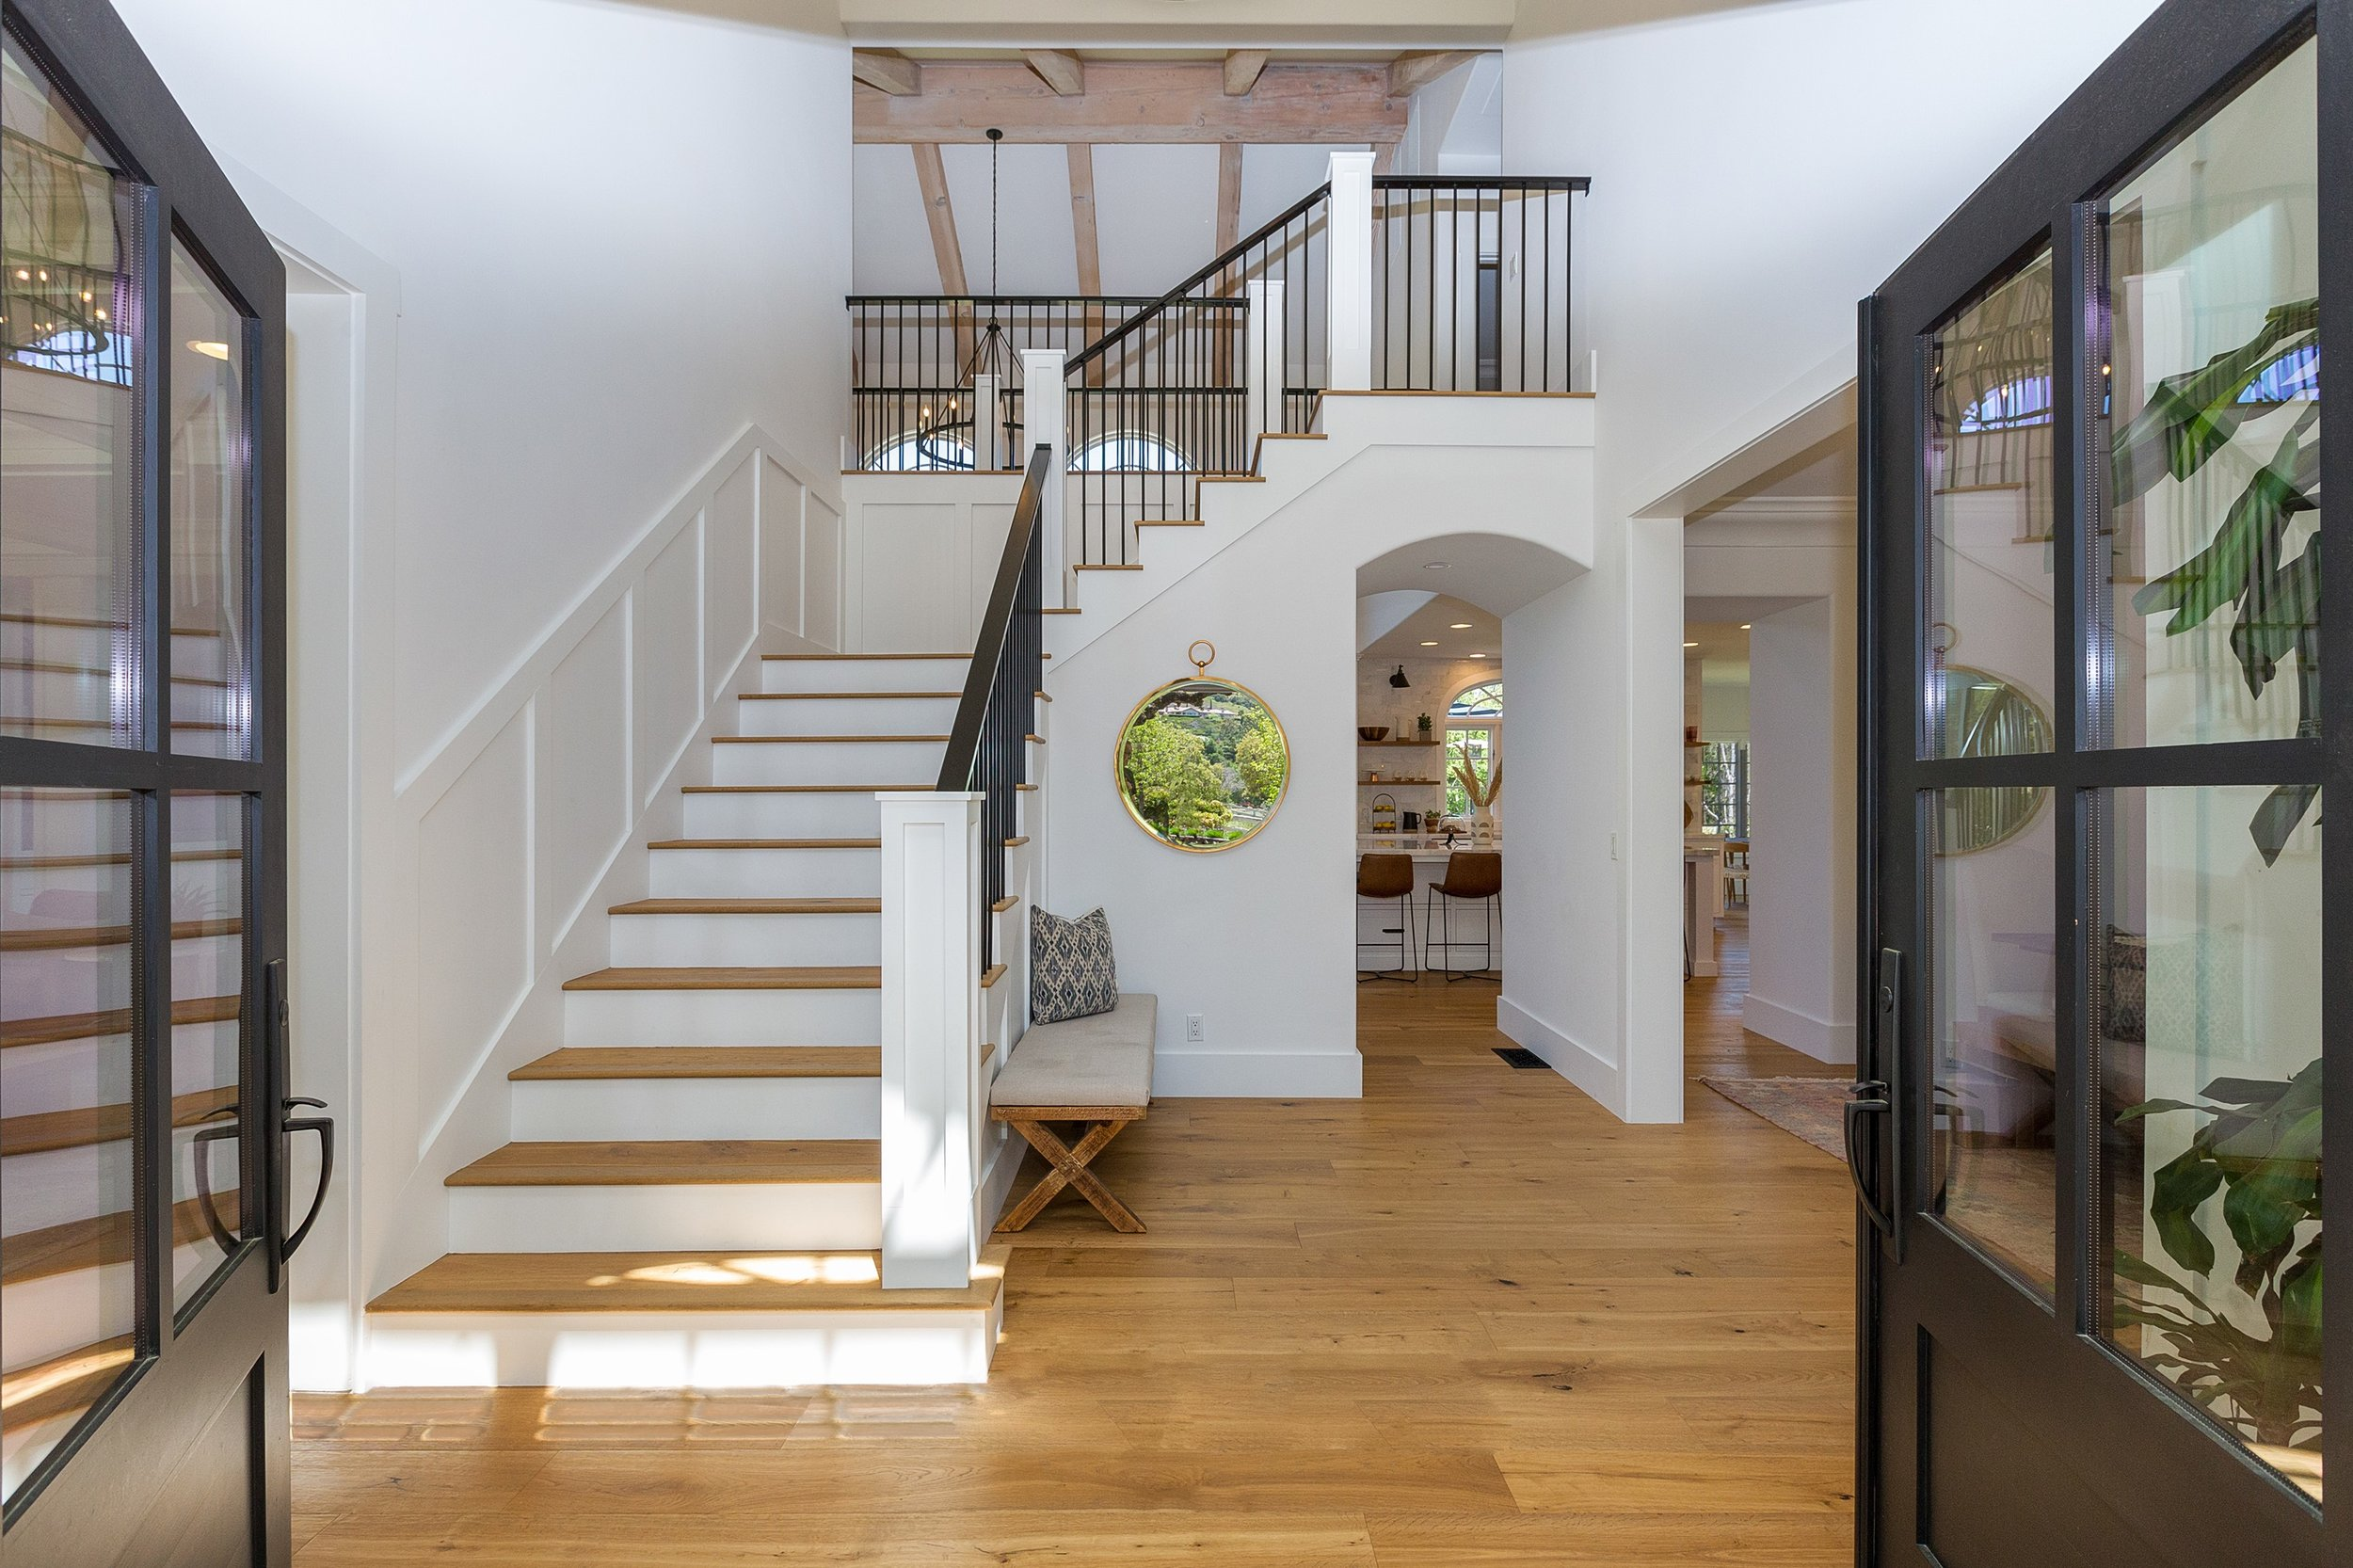 020_Front Entry.jpg